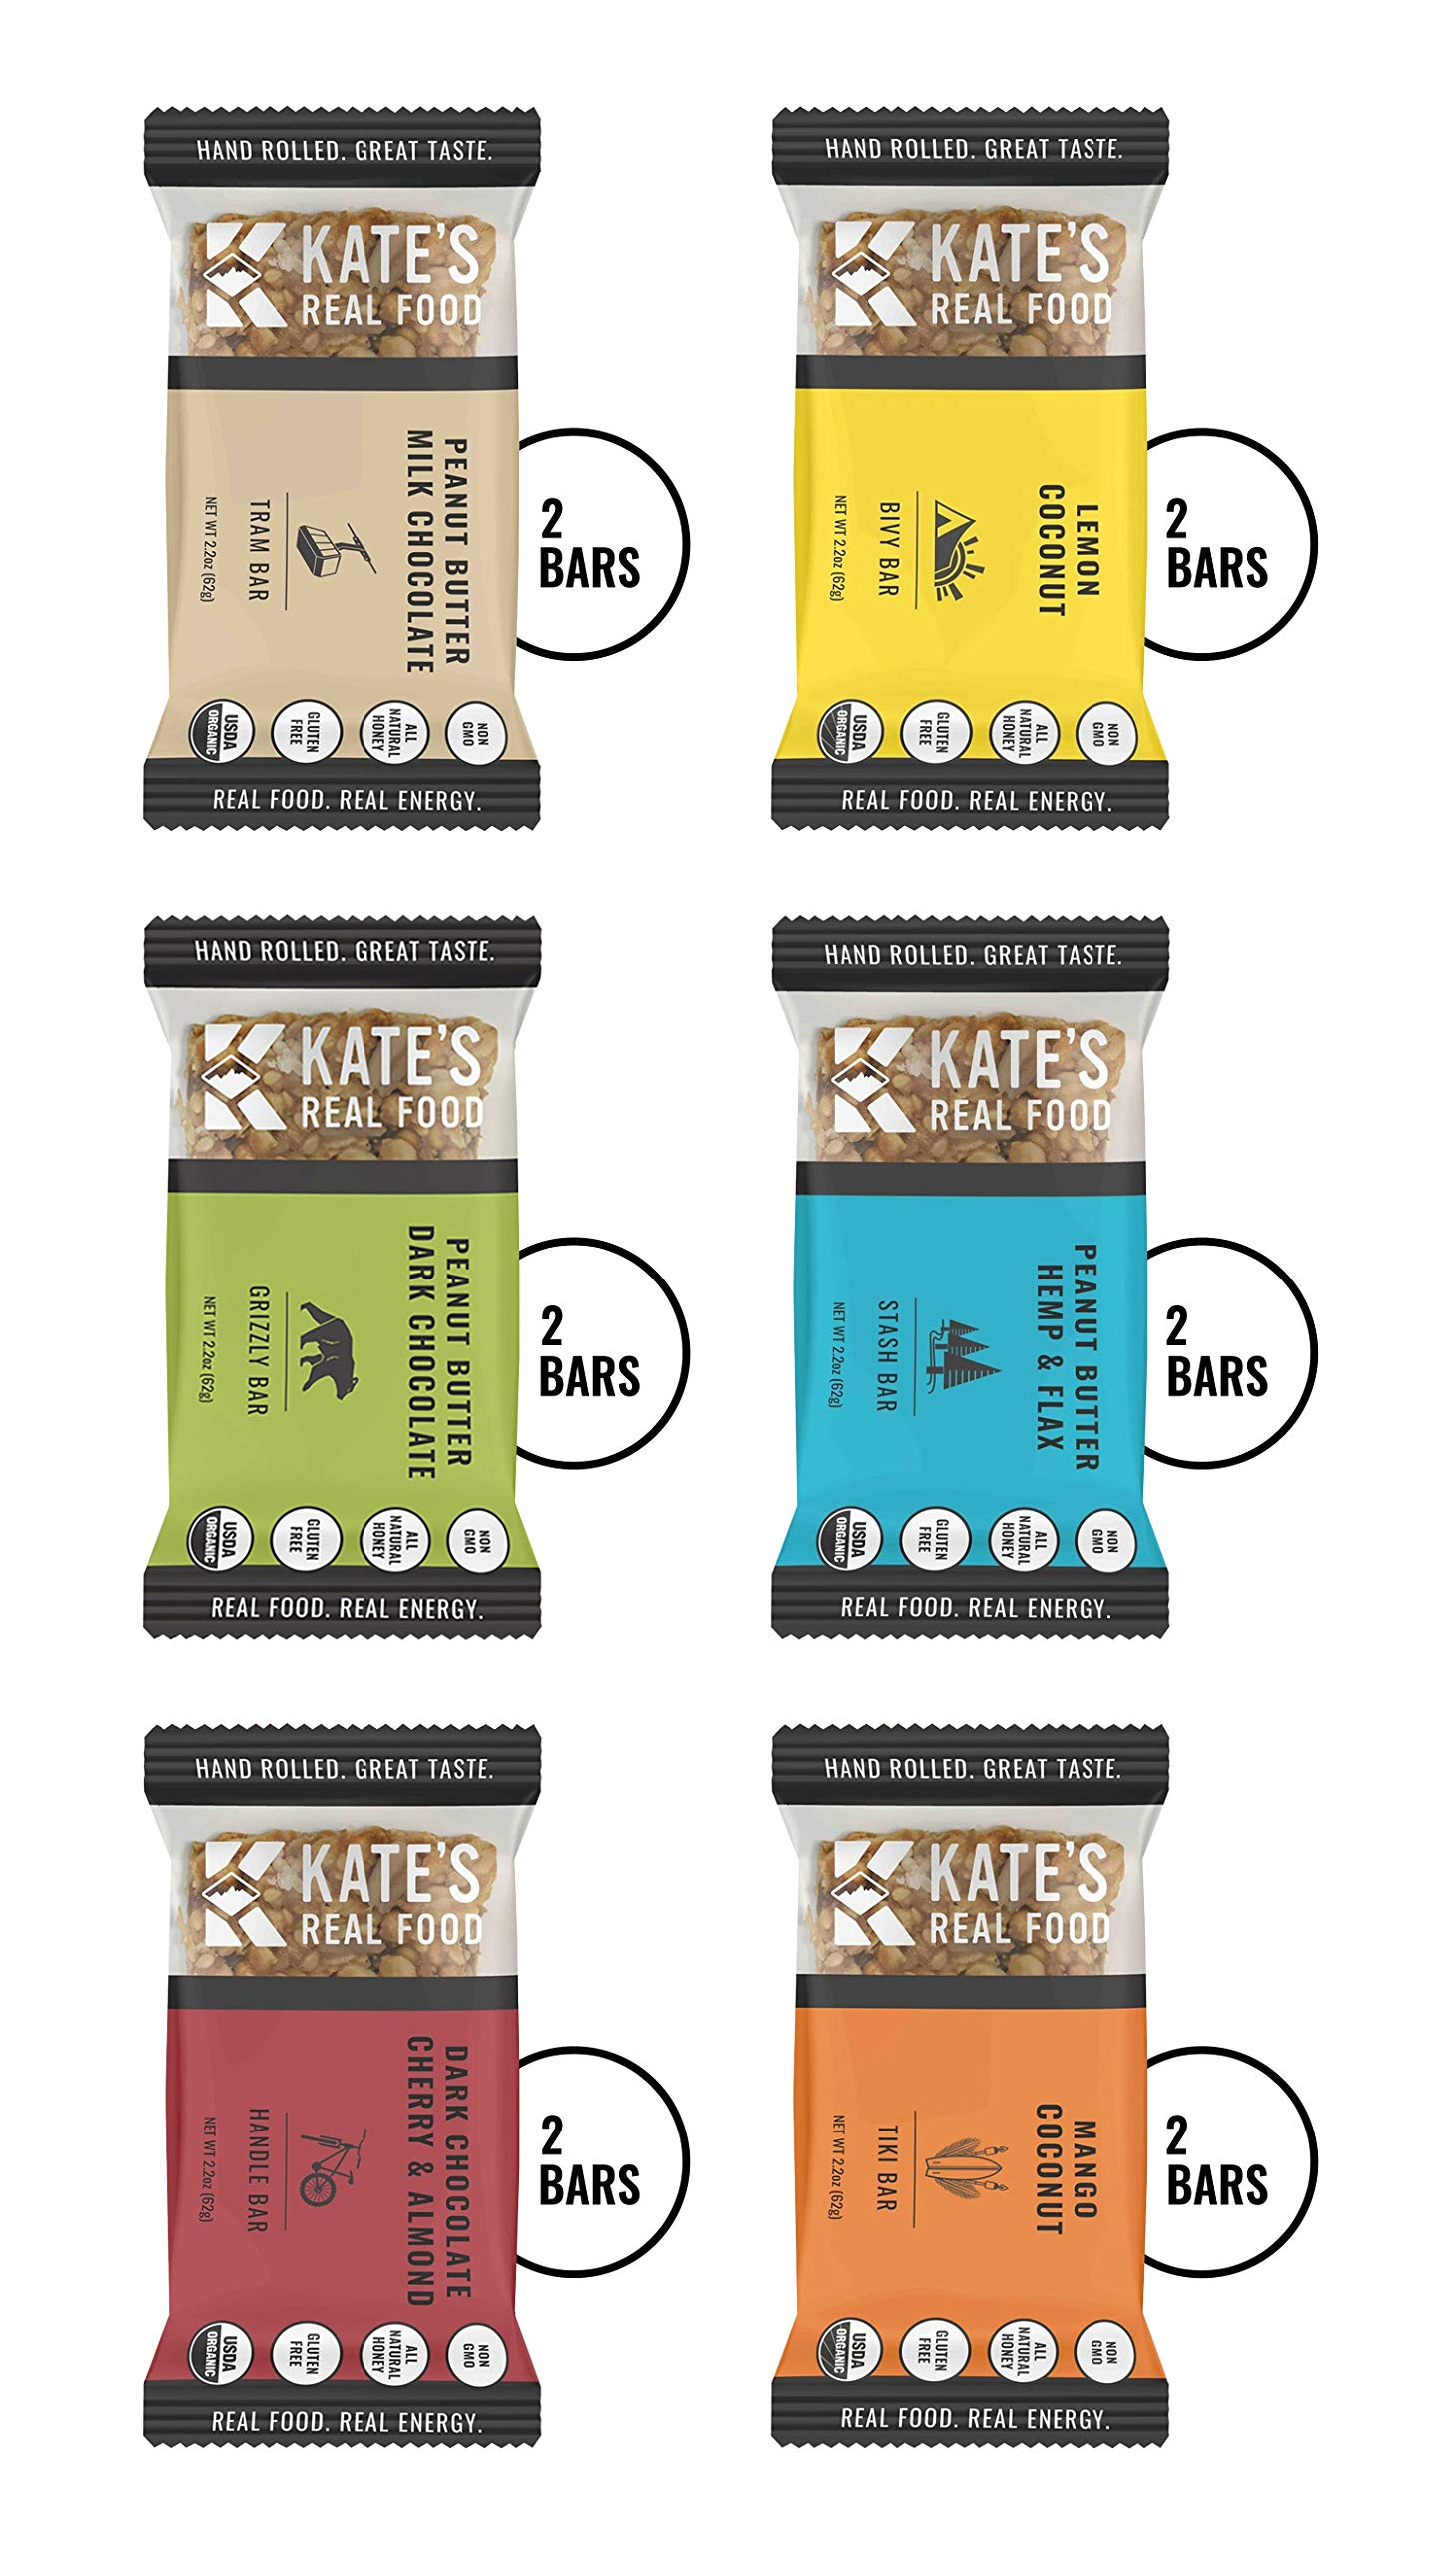 Kate's Real Food Granola Bars 12 Pack   Variety Pack 2 of Each Flavor   Clean Energy, Organic Ingredients, Gluten Free, Non GMO   All Natural Delicious Health Snack by KATE'S